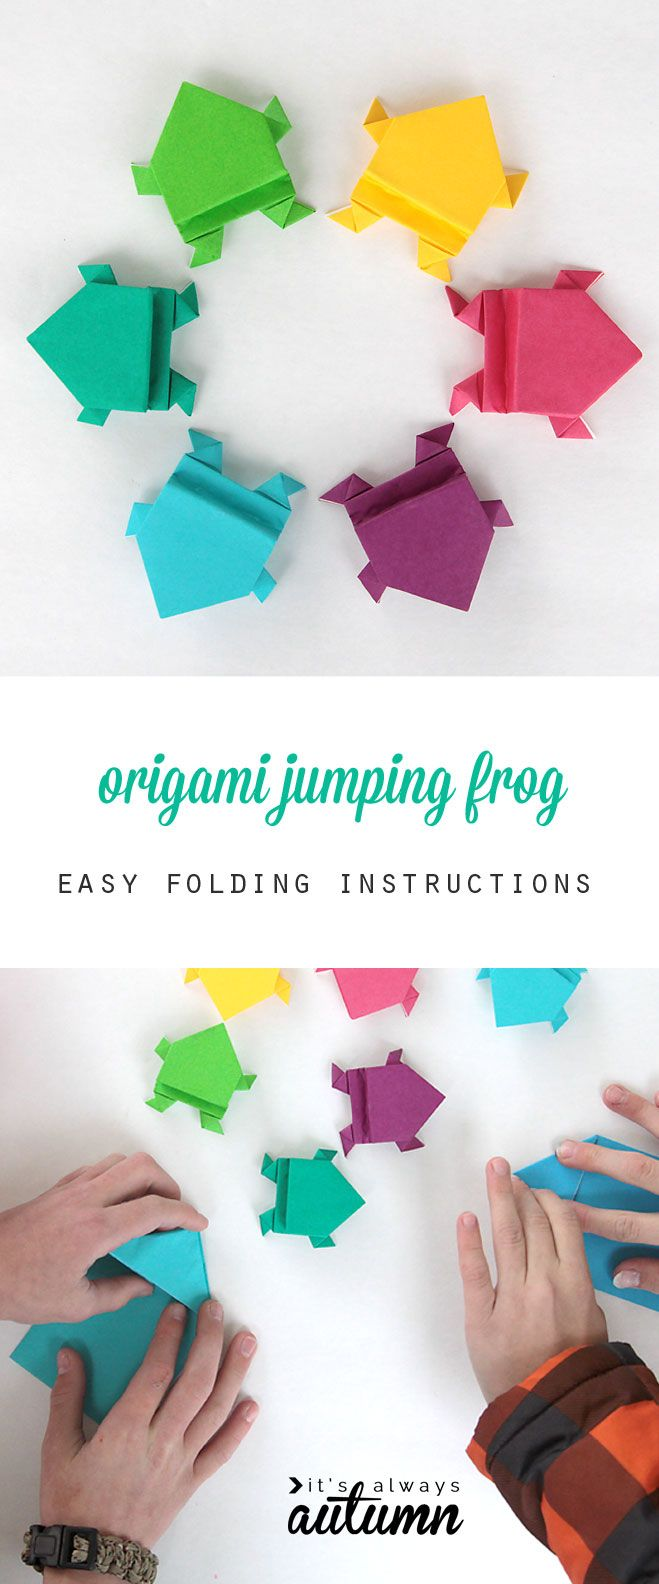 Origami Jumping Frogs Easy Folding Instructions